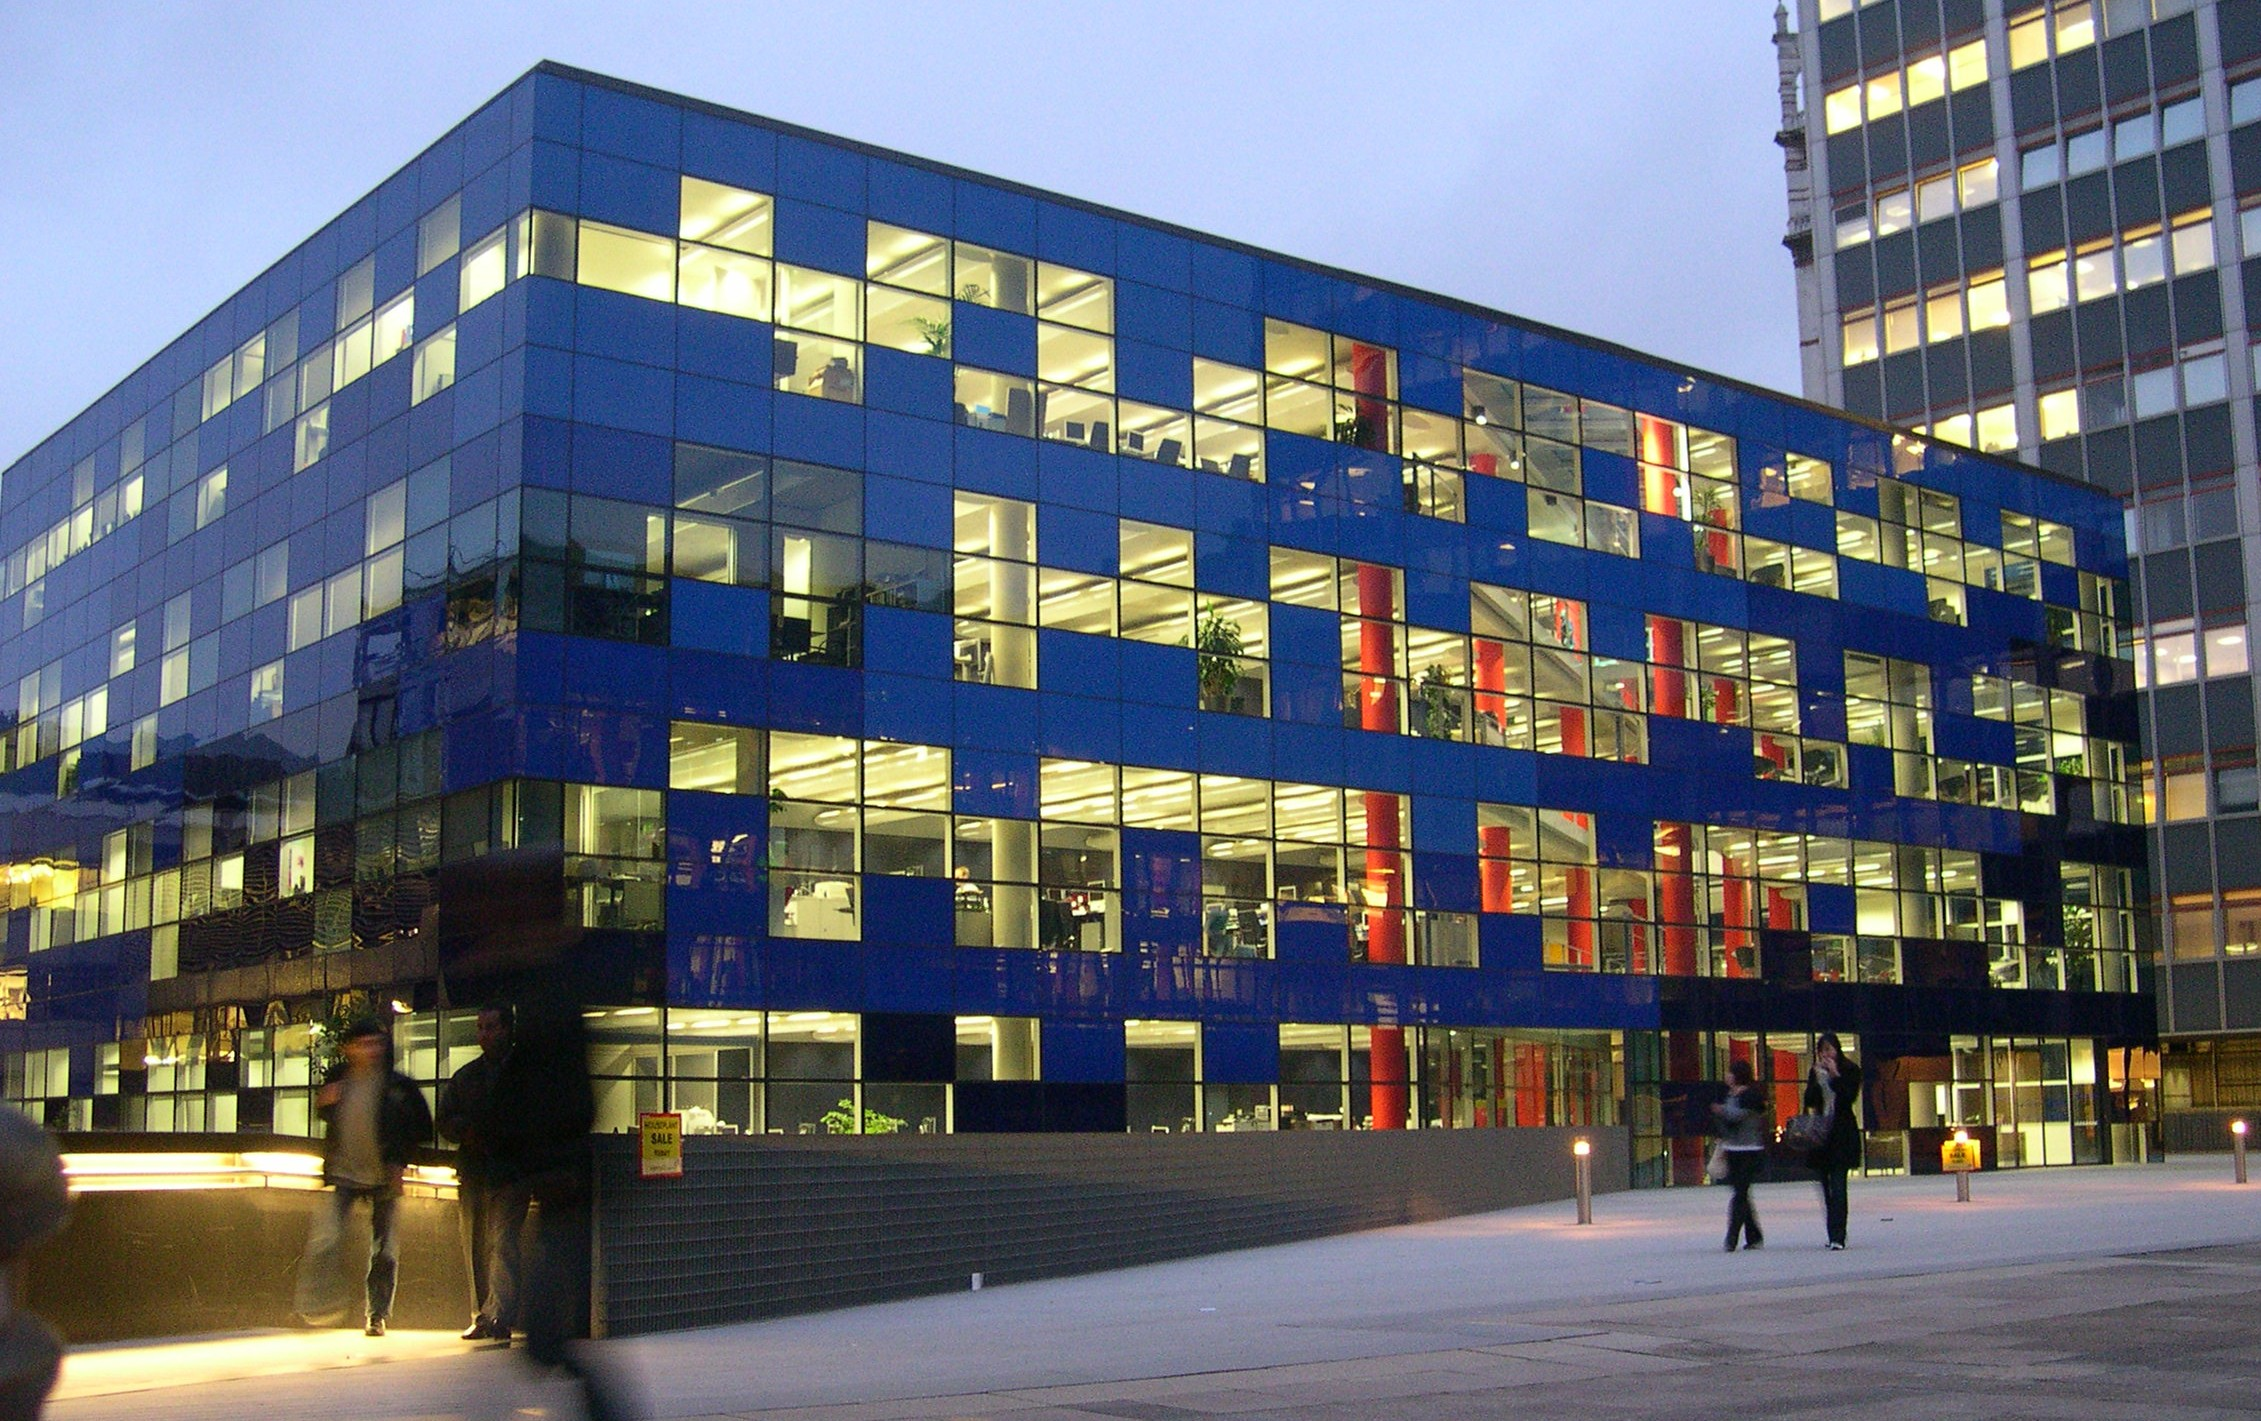 The Imperial College London, one of the top STEM universities in the world, launches specialization to give students a solid foundation in machine learning and AI. -